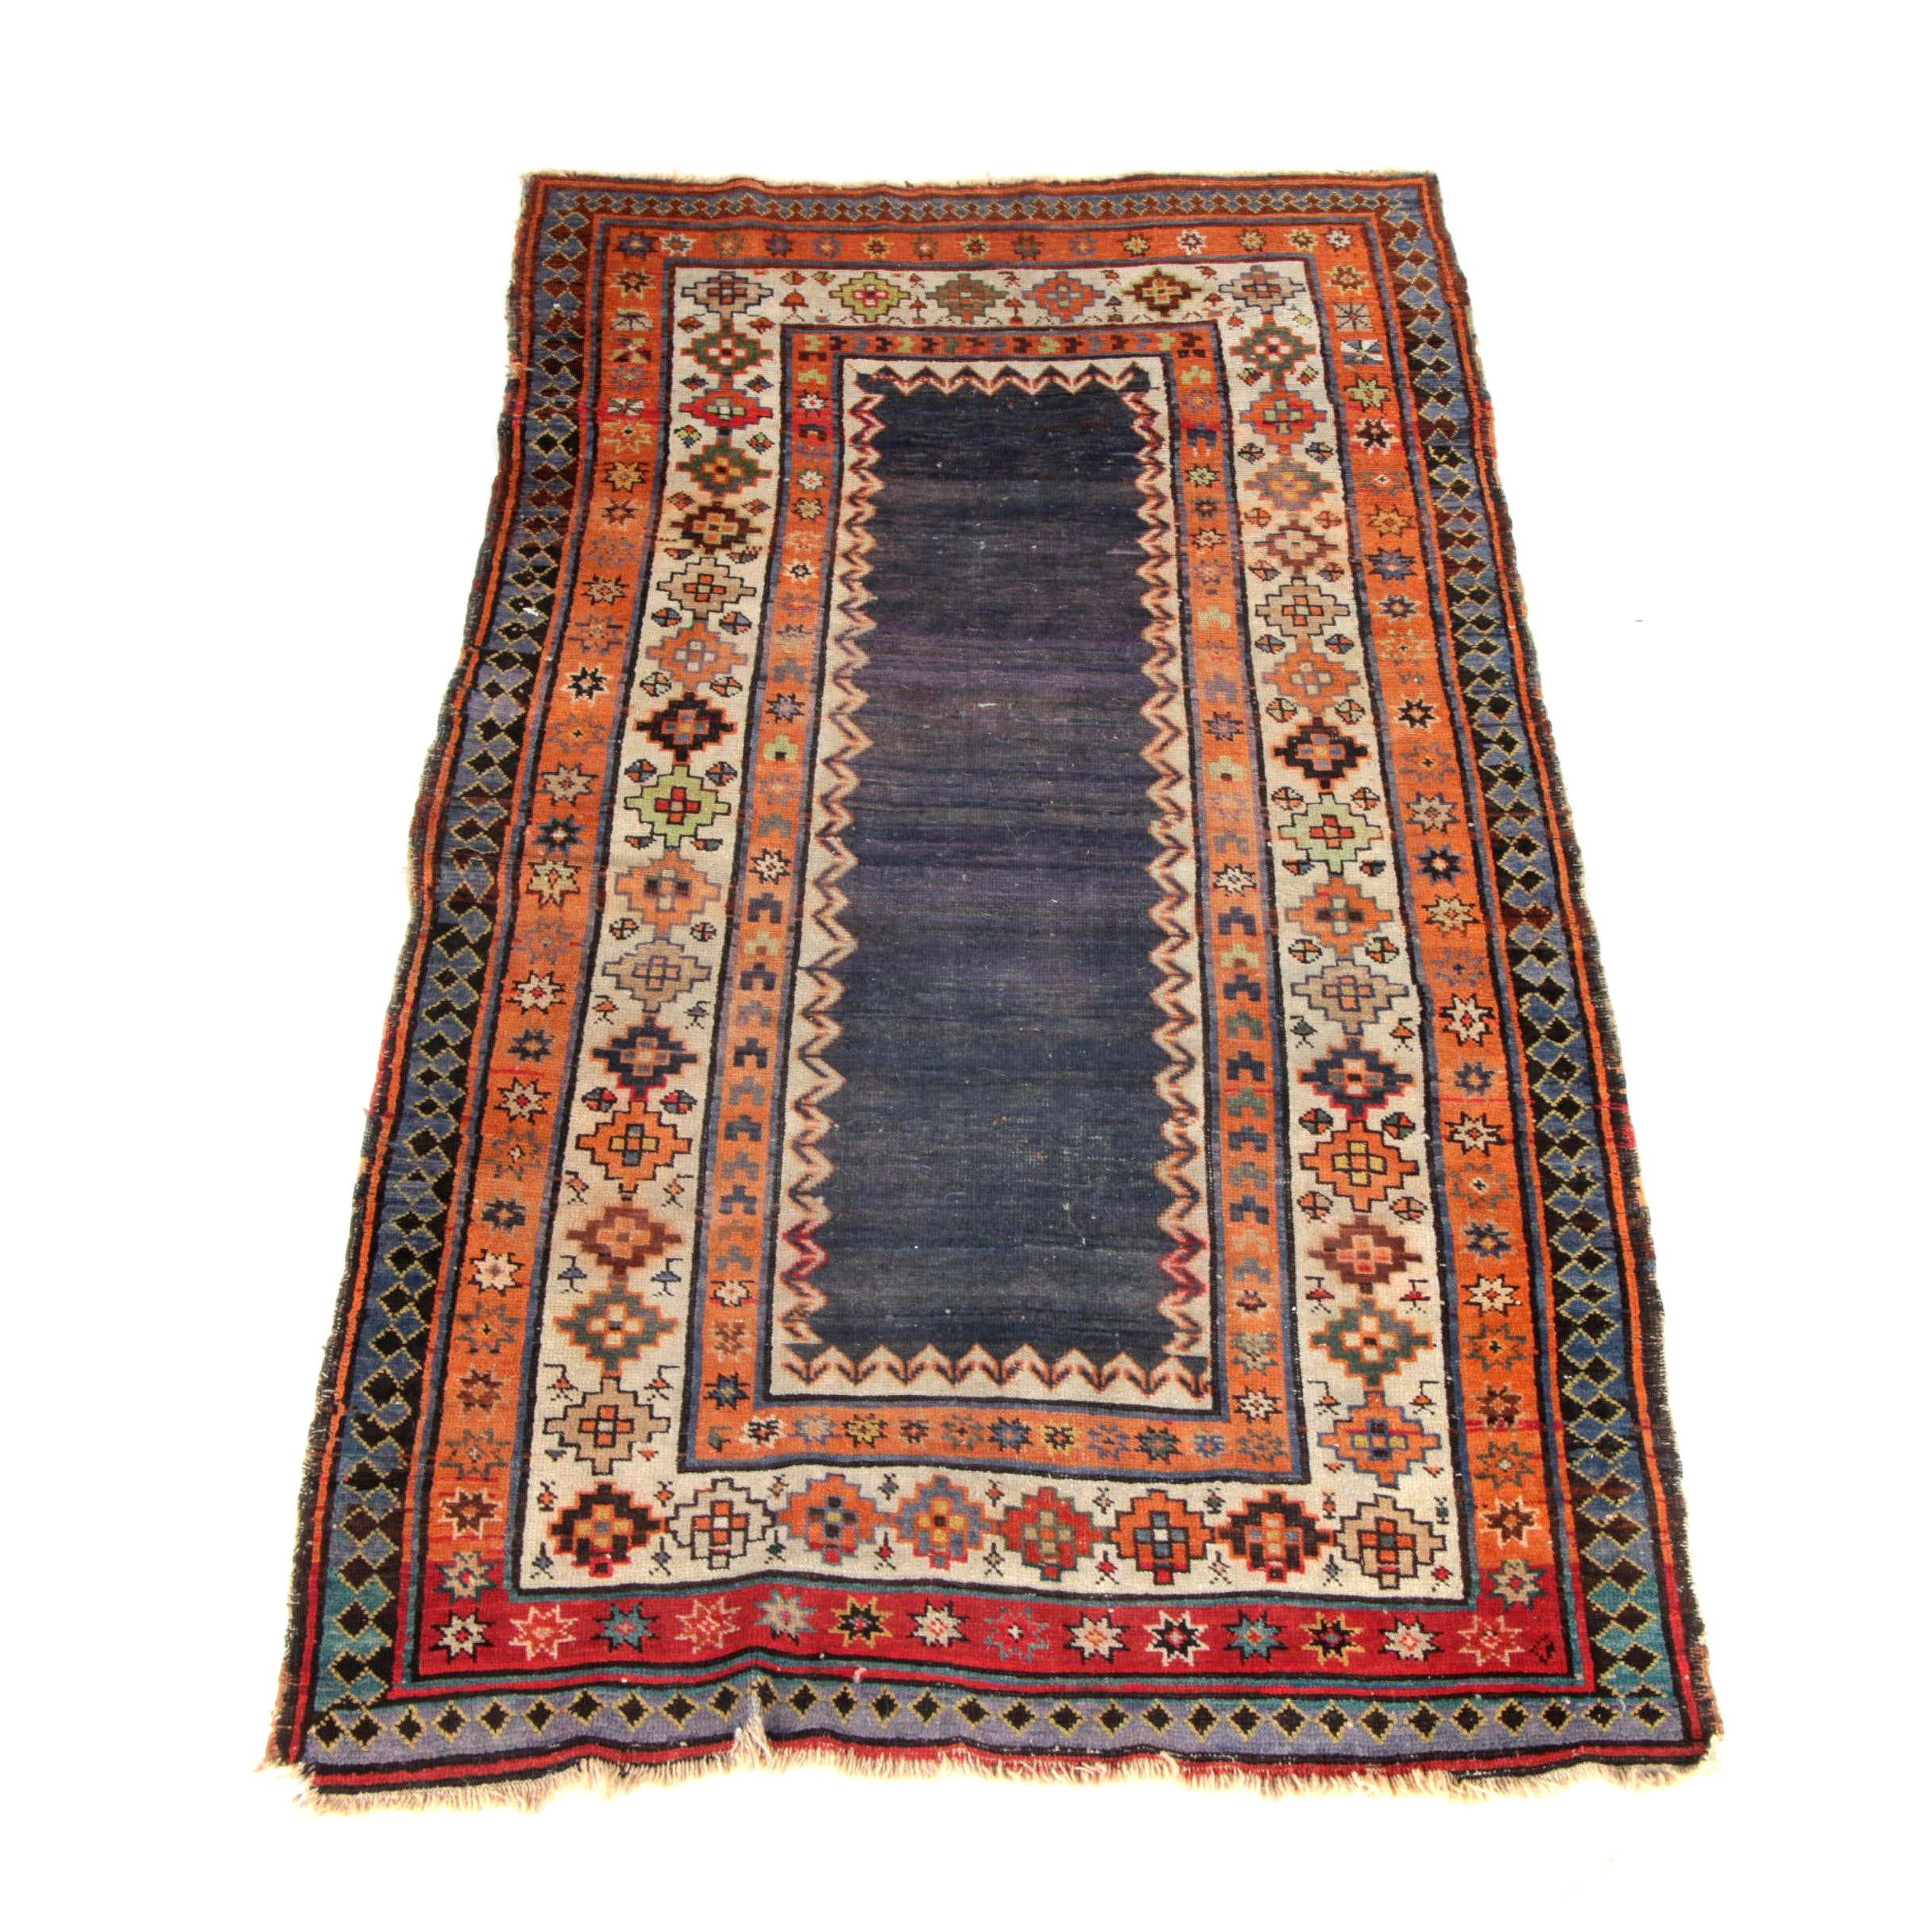 Antique Hand-Knotted Talish Caucasian Area Rug